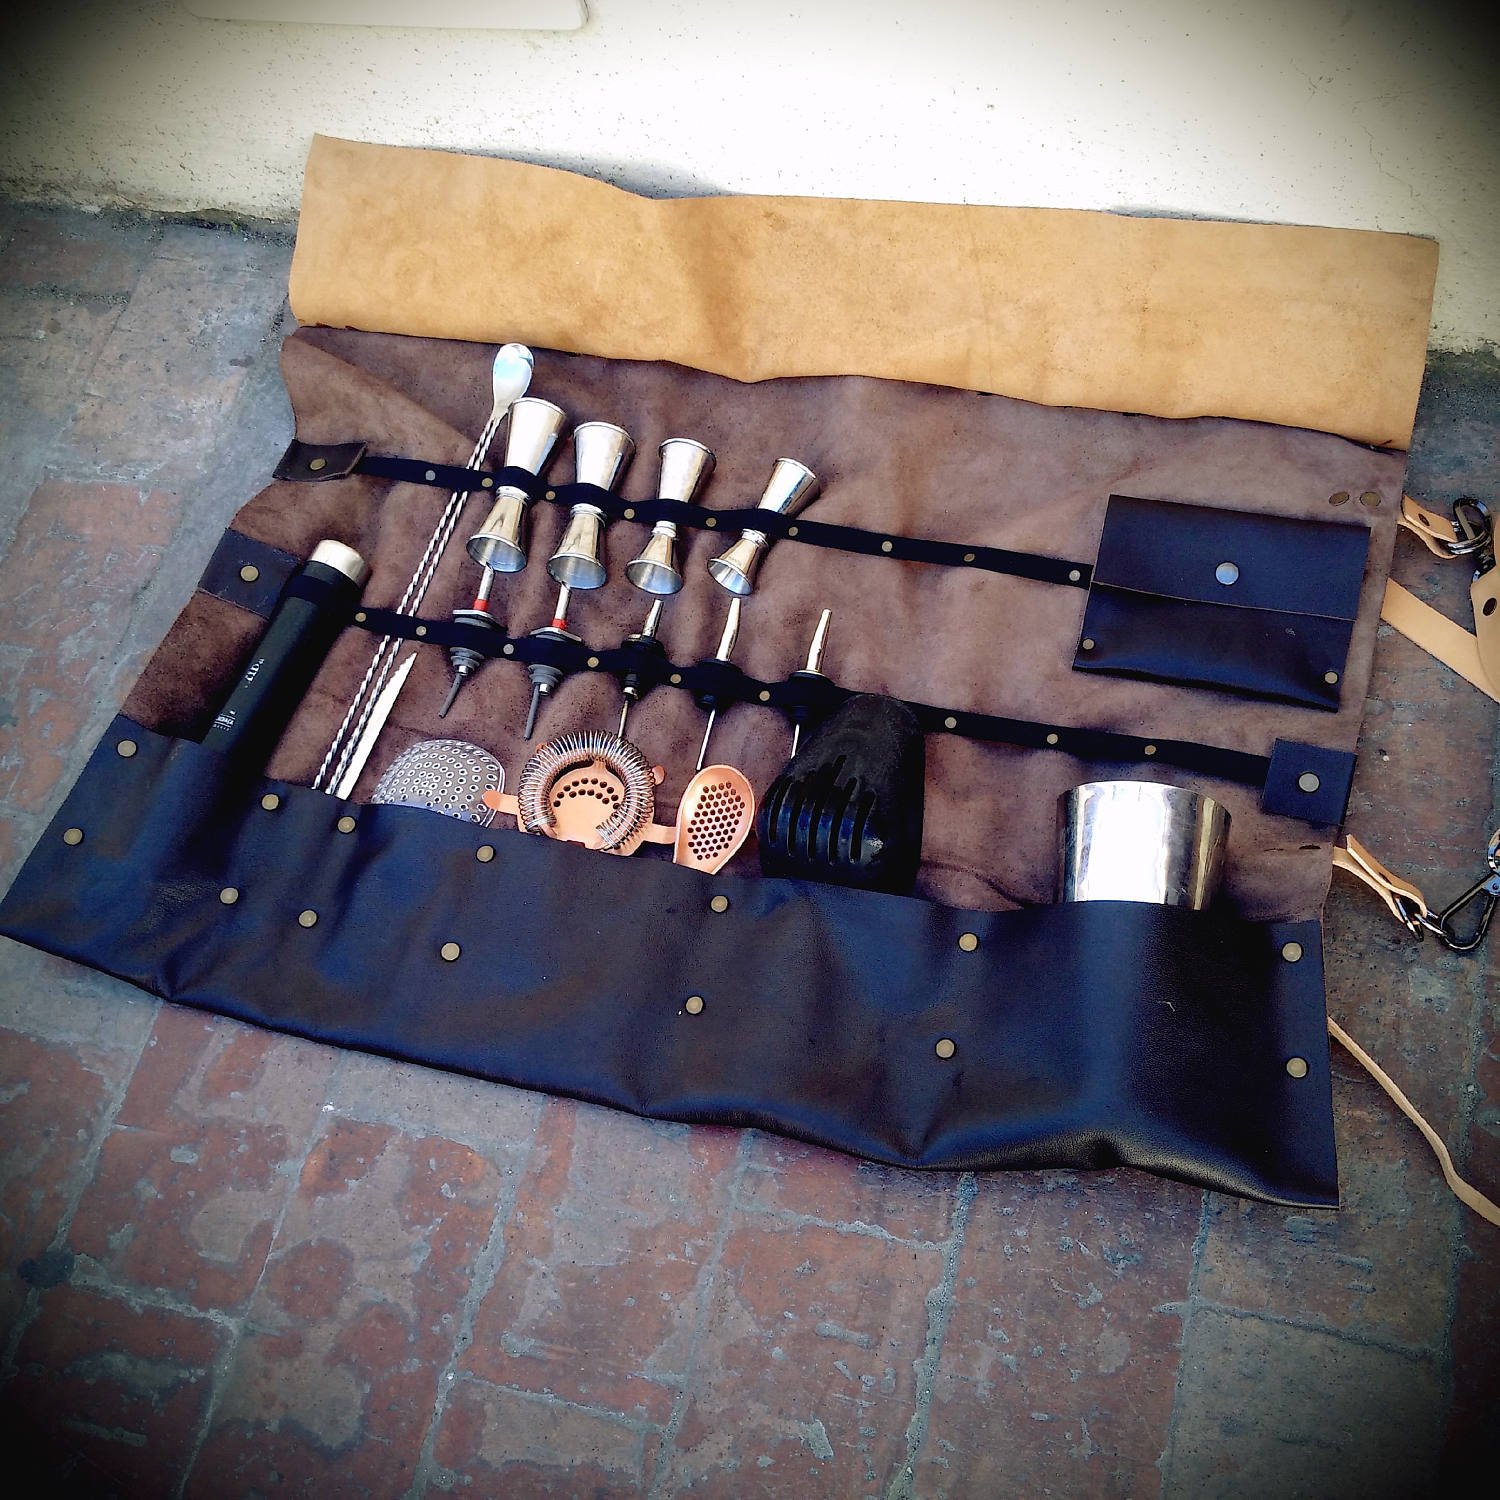 Barman Leather Bag Stock Exchange Handmade Leather Full Grain Leather Bartender Made in Italy Bar tool holder tools custody Roll The Westlands Skin Fai una domanda by The Westlands